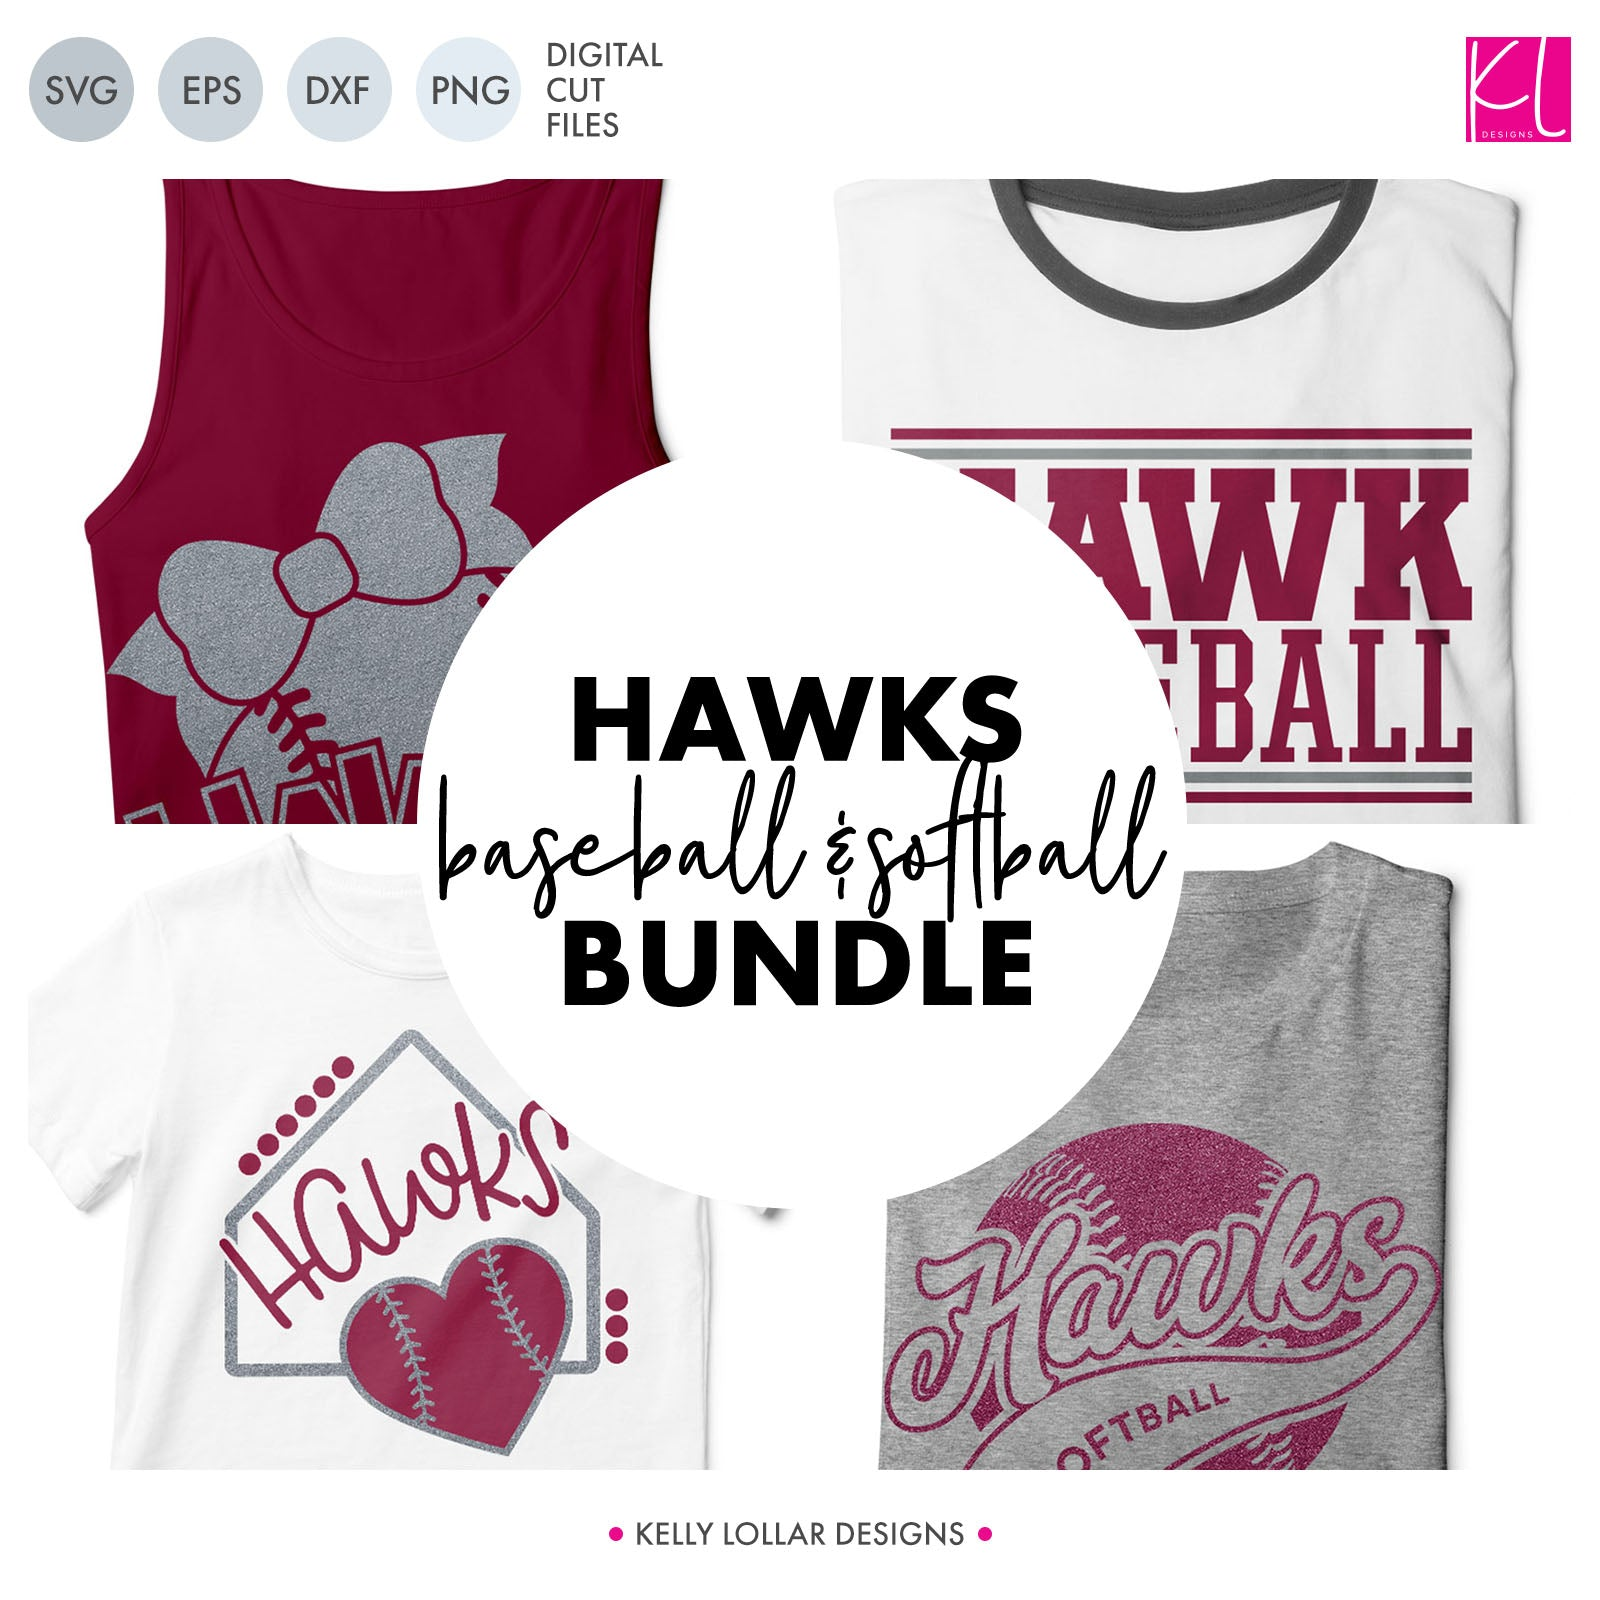 Hawks Baseball & Softball Bundle | SVG DXF EPS PNG Cut Files It's baseball and softball season, so Hawk crafter know what that means ... new spirit shirts! This fifteen-piece bundle includes a little something for everyone - from girly and cute